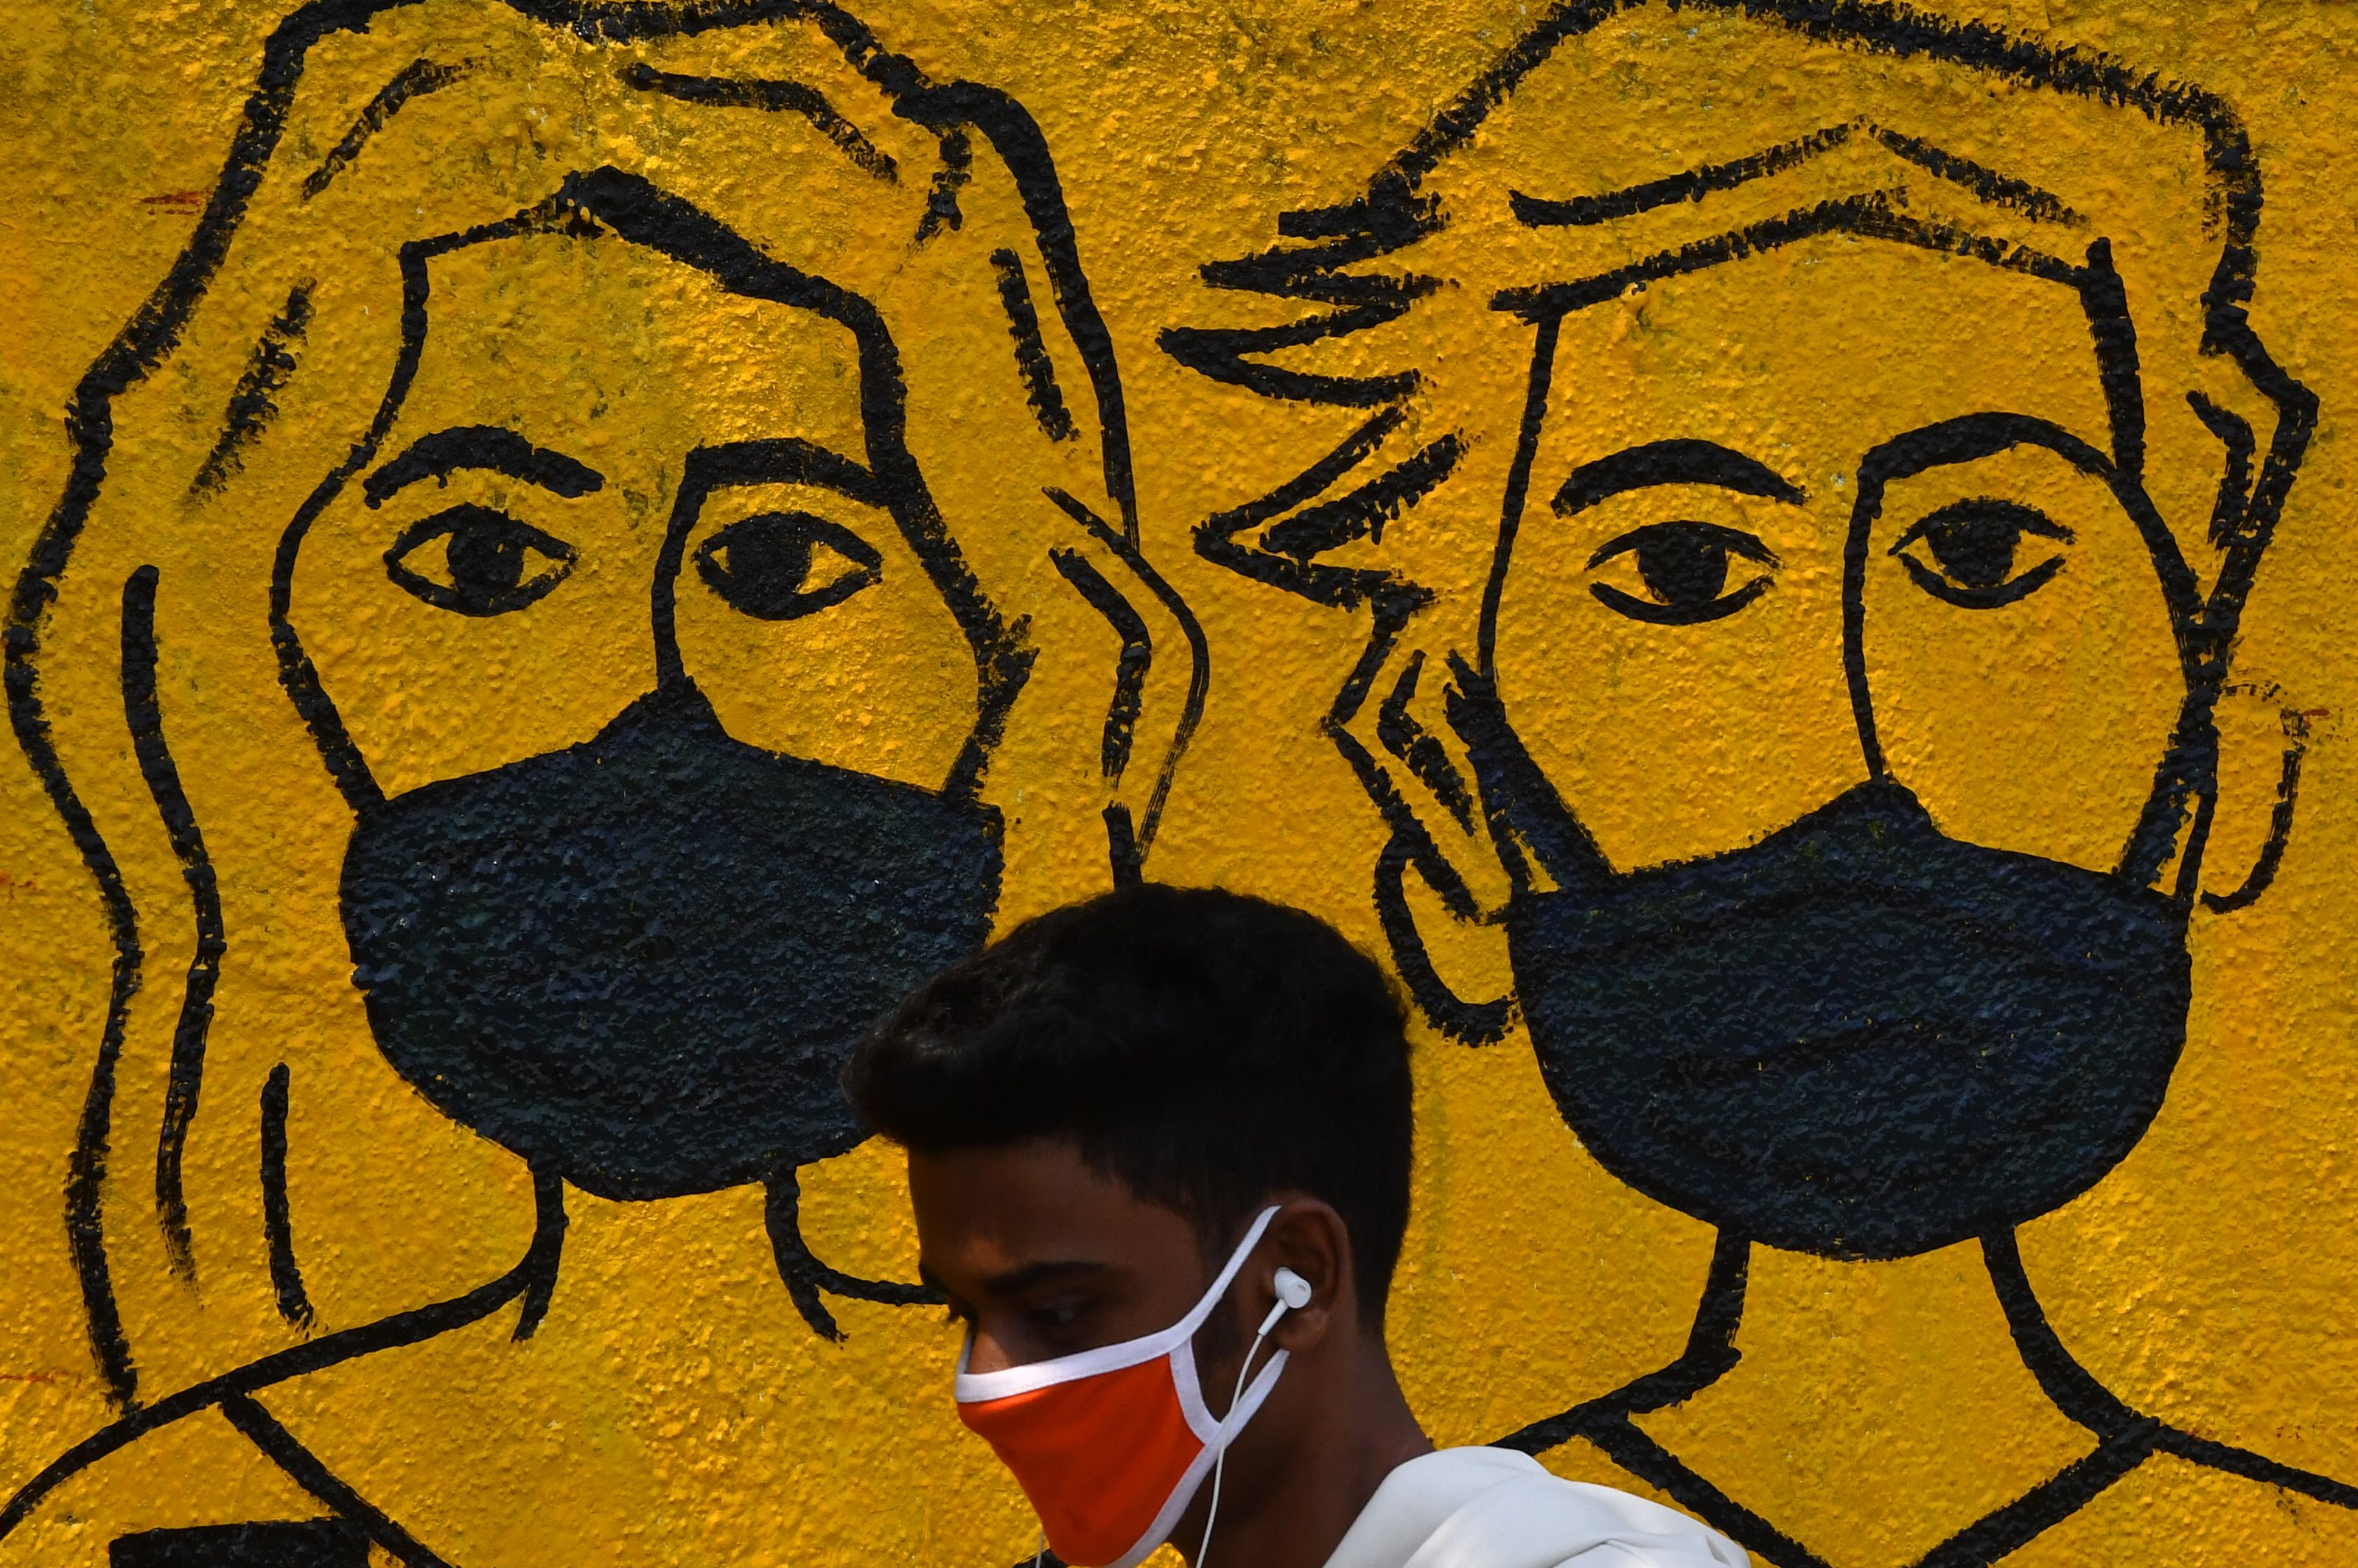 A youth wearing a facemask walk past a mural depicting people wearing famcemaks during the first day of a 21-day government-imposed nationwide lockdown as a preventive measure against the COVID-19 coronavirus, in Mumbai on March 25, 2020. - India's billion-plus population went into a three-week lockdown on March 25, with a third of the world now under orders to stay indoors, as the coronavirus pandemic forced Japan to postpone the Olympics until next year. (Photo by INDRANIL MUKHERJEE / AFP)